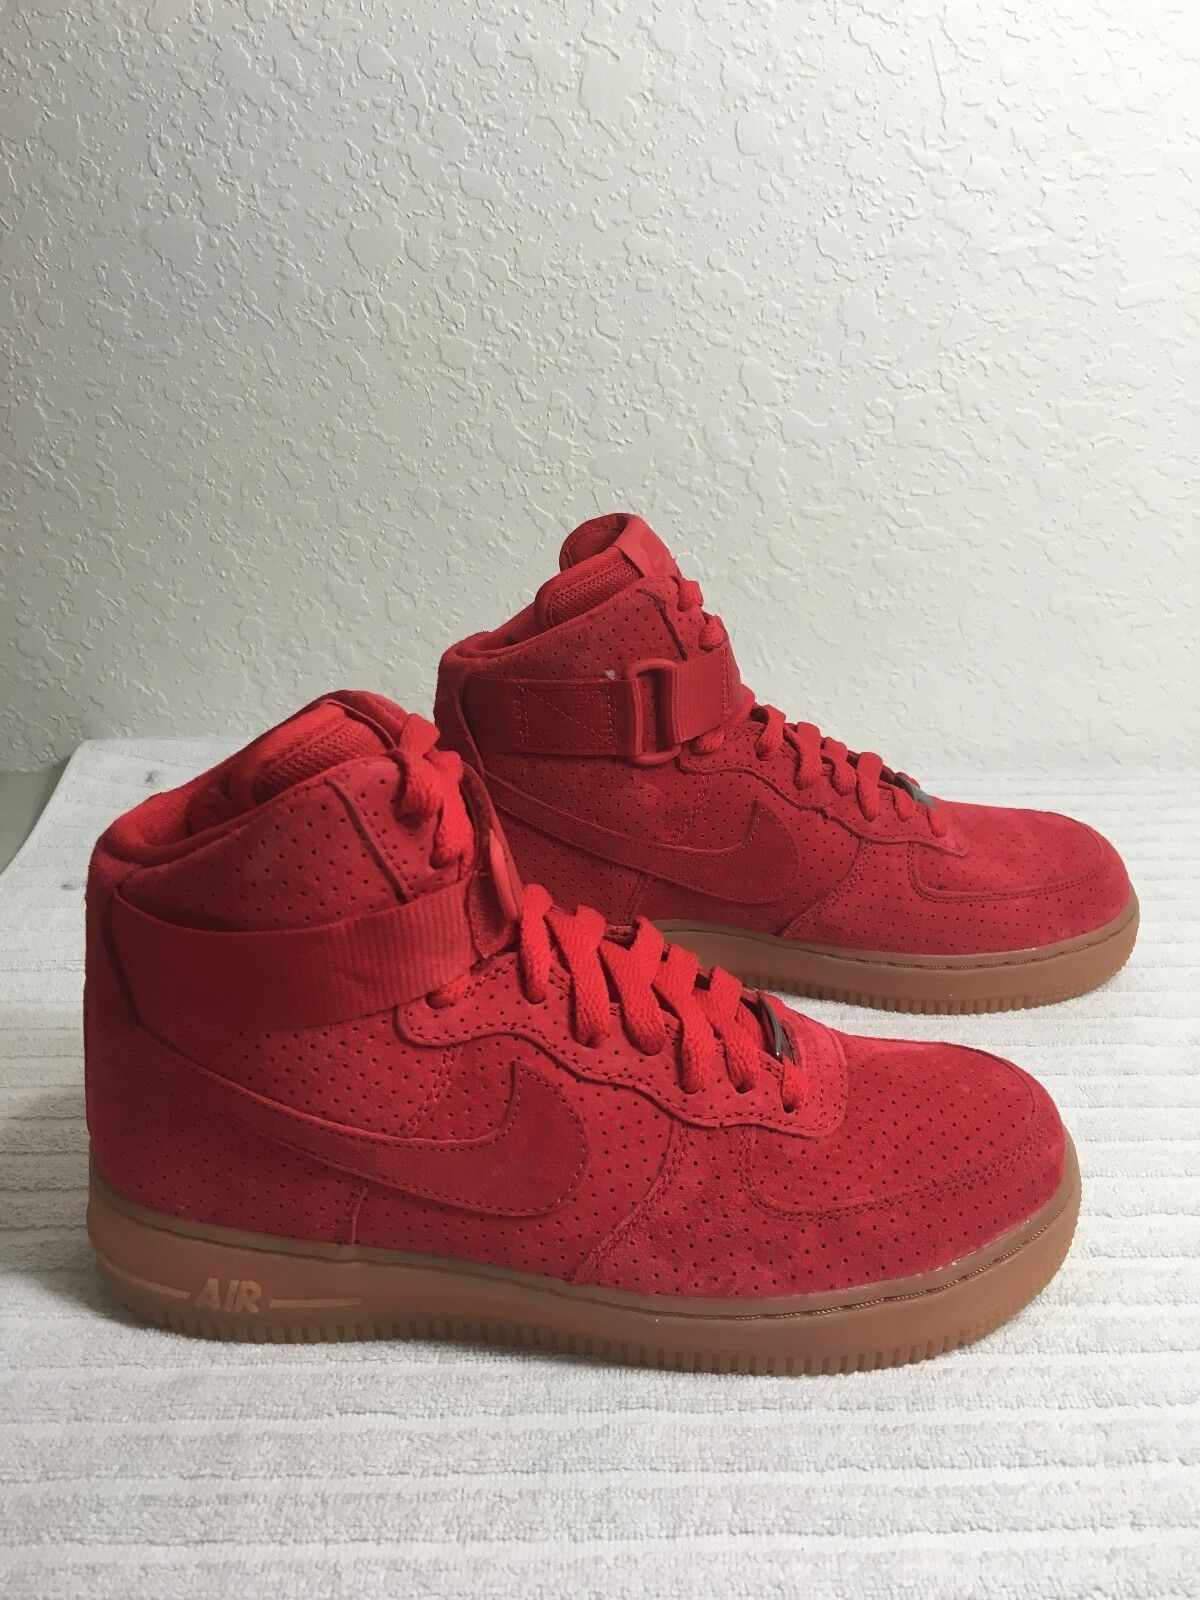 64c07bbcd9ea77 Womens Nike Air Force 1 Hi Suede Shoes Sz 8 University Red Gum ...